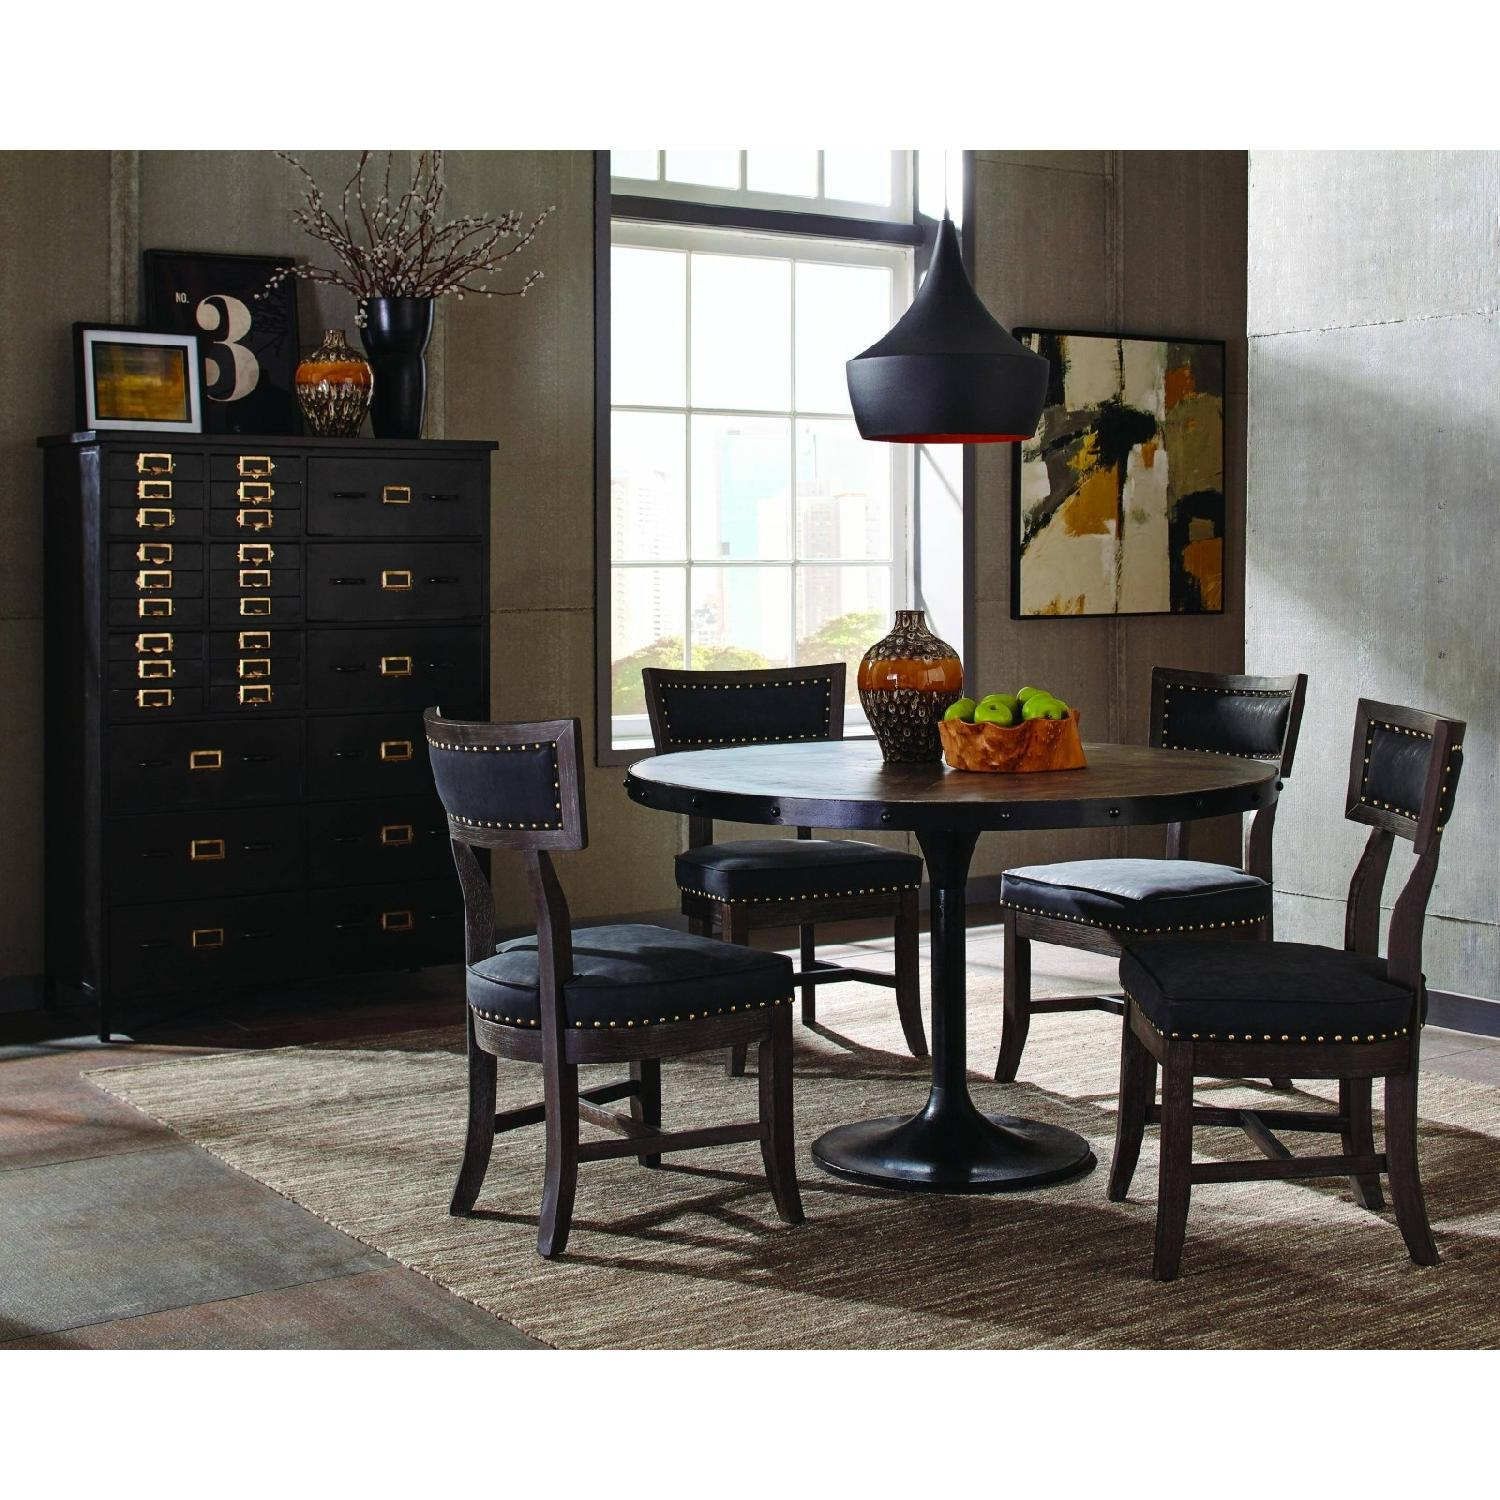 Rustic 27-Drawer Accent Chest in Black Finish - image-1